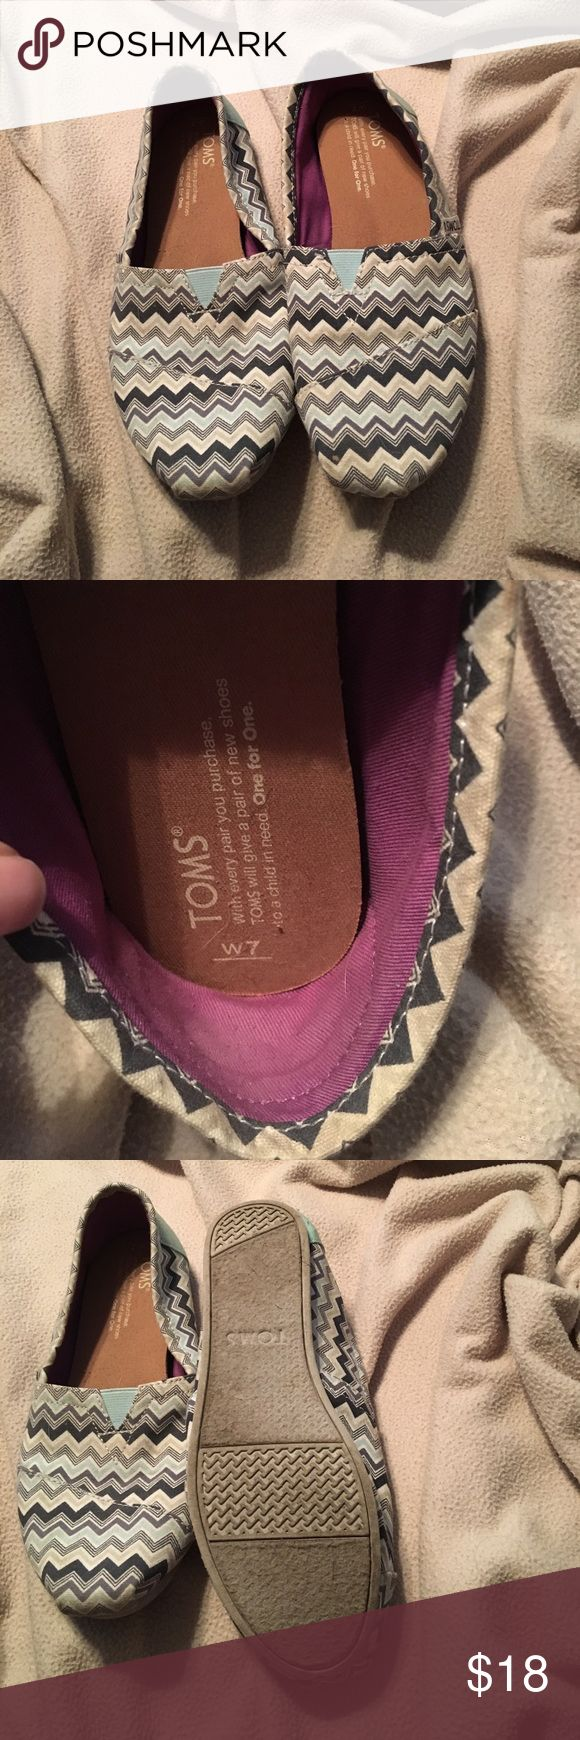 Chevron toms Gently used blue/grey/charcoal/tan chevron Toms. Toms Shoes Flats & Loafers